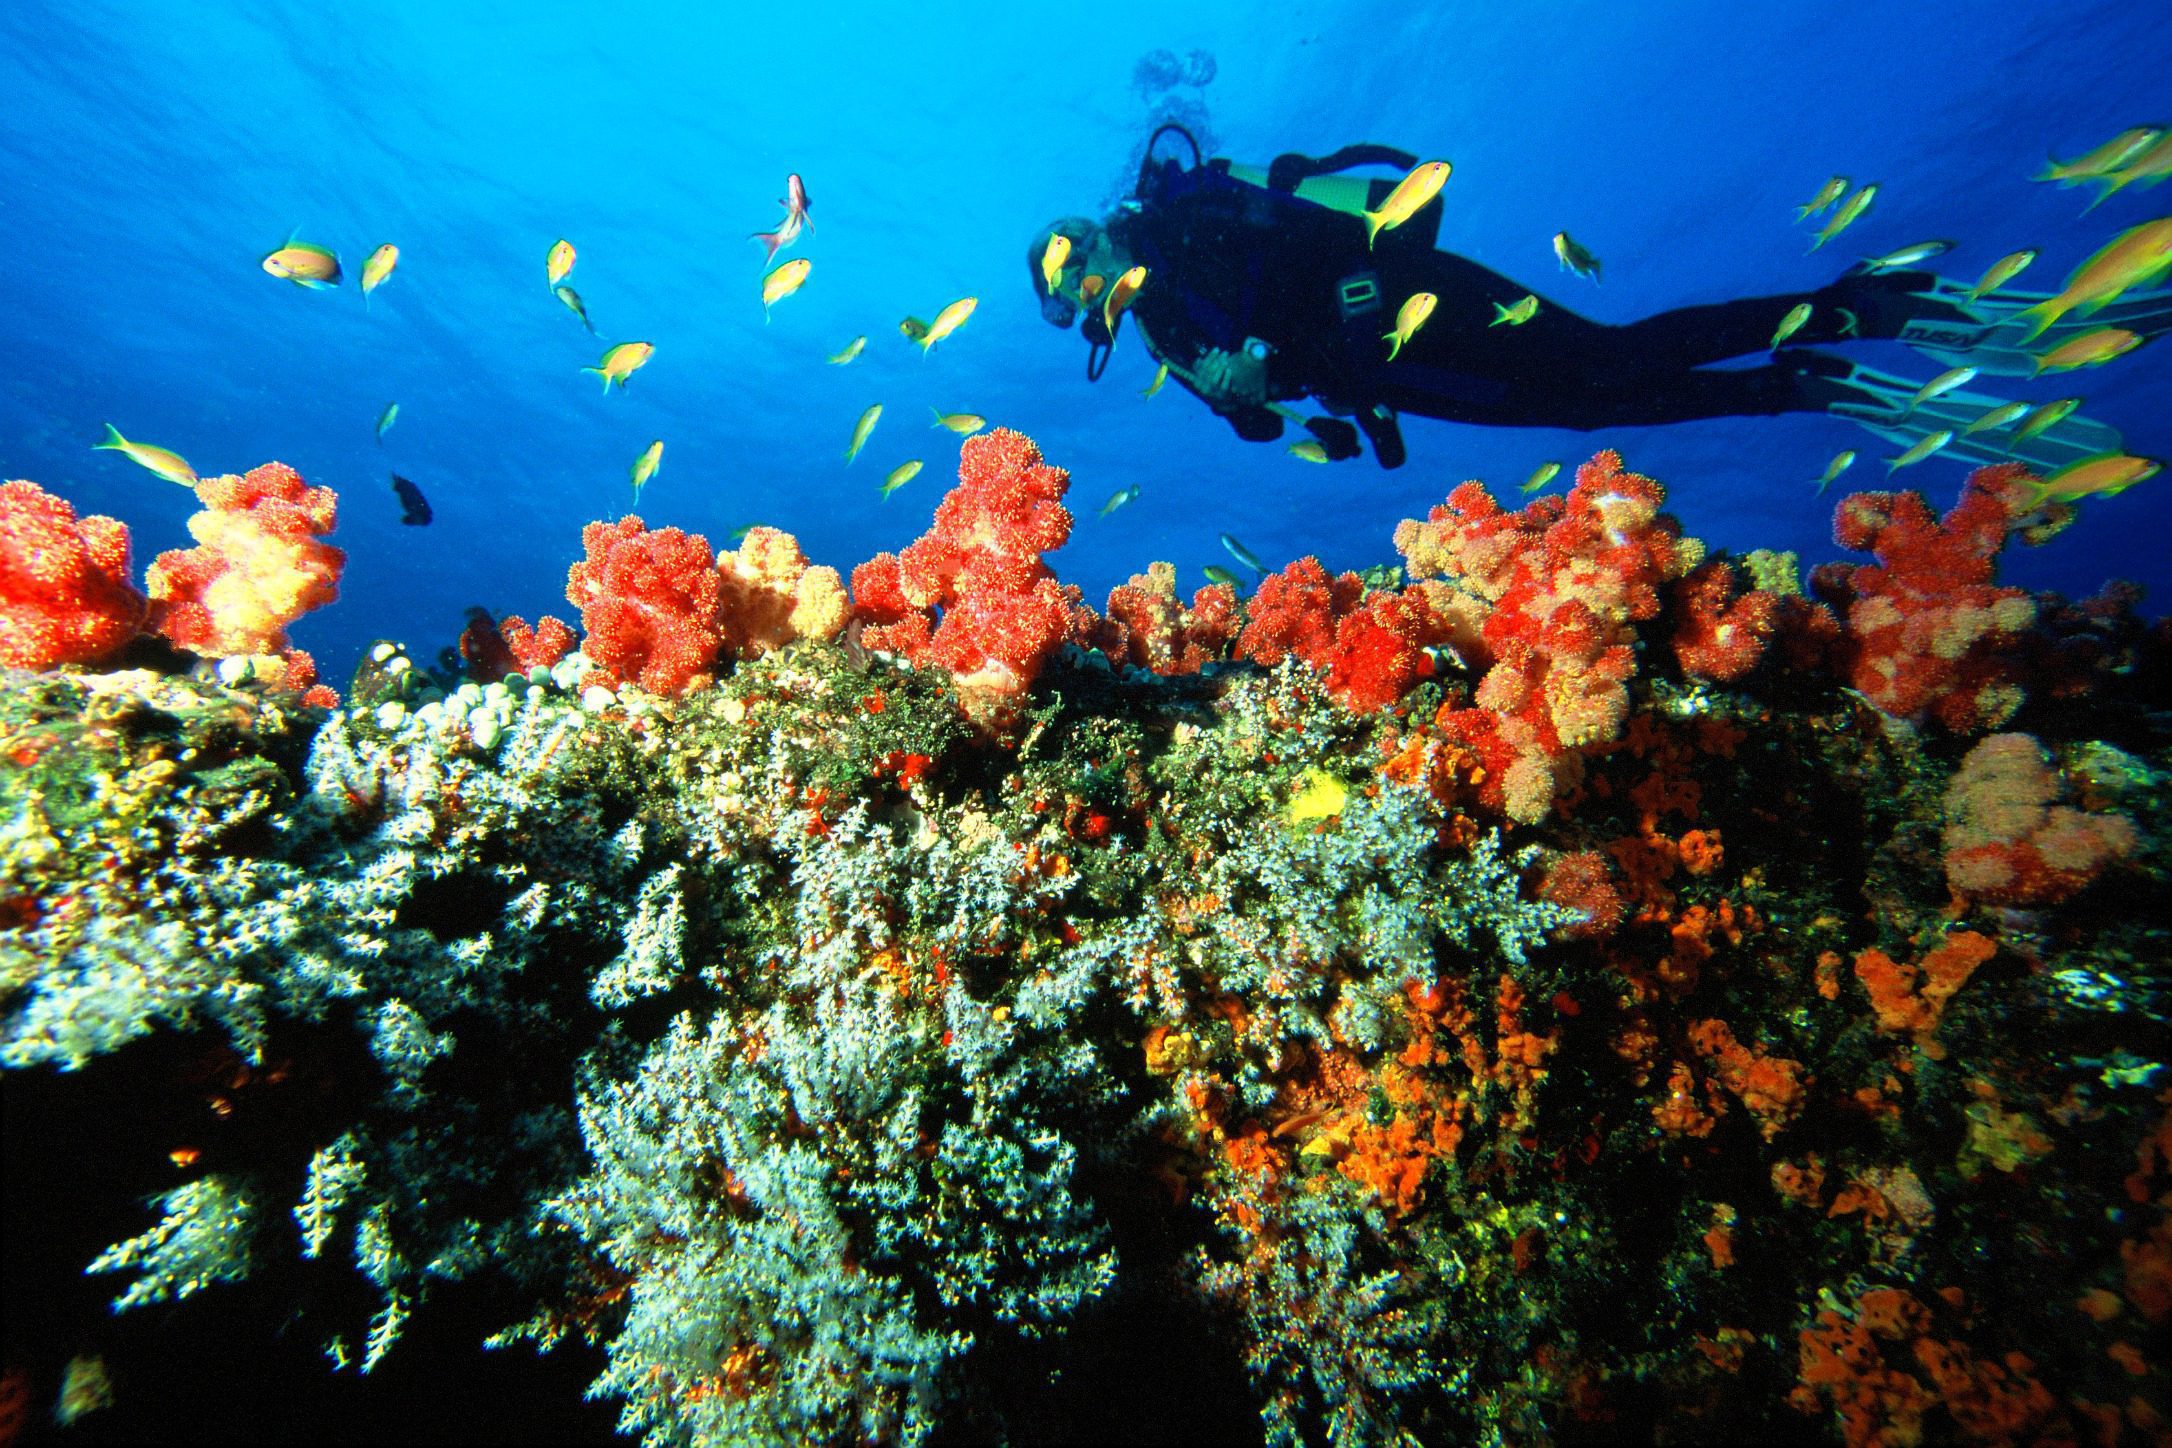 Diver above colorful coral